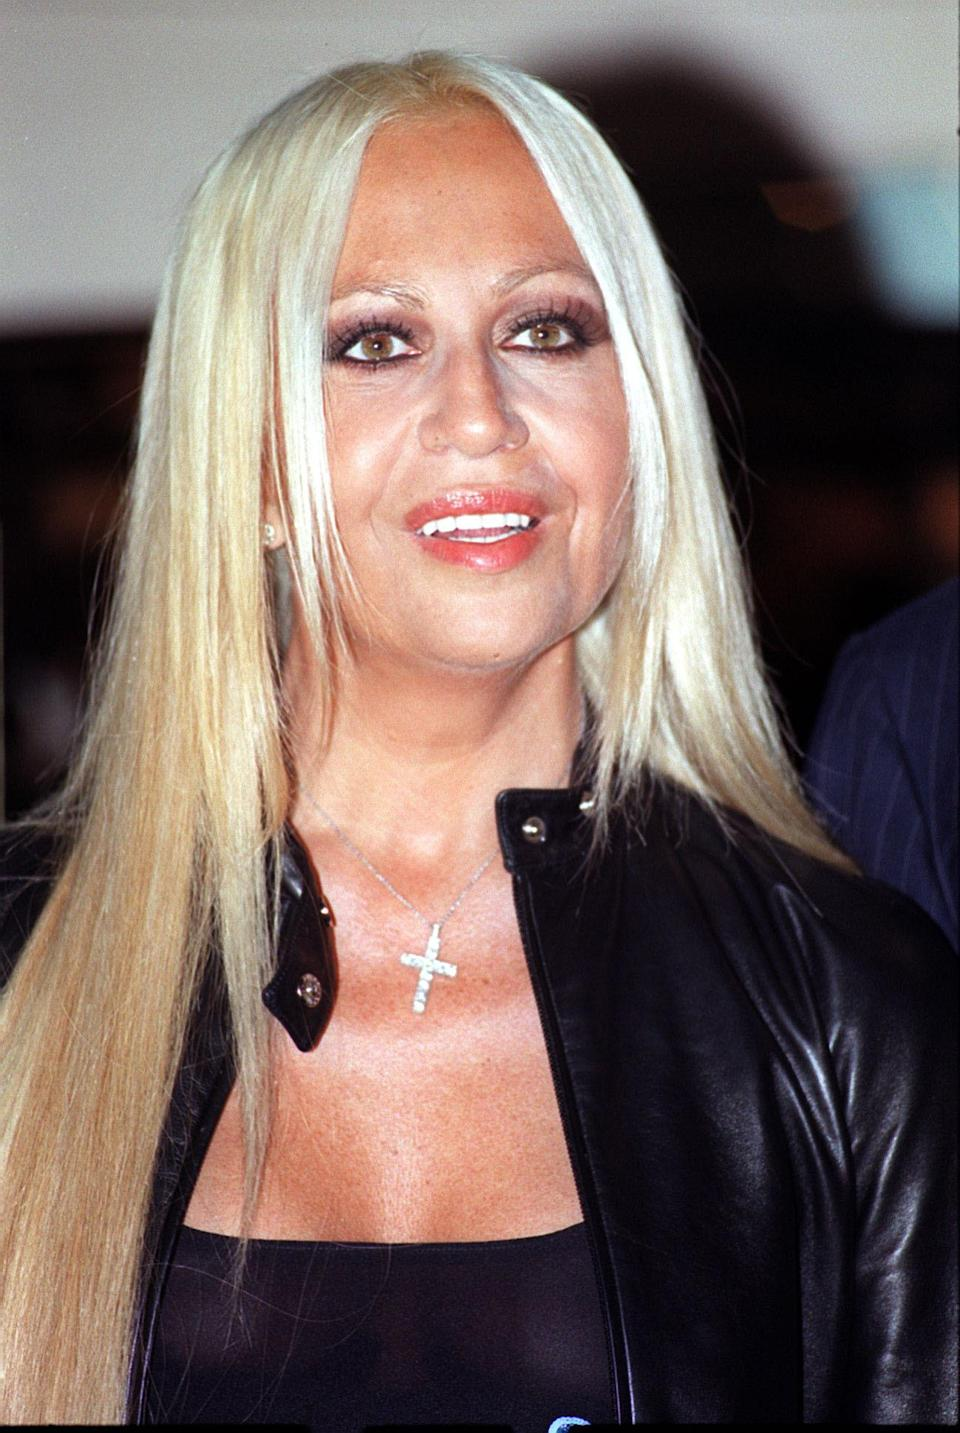 <p>By this time, Donatella had taken the helm at Versace and was preparing for her first London show. She appears to have started some cosmetic work with her face appearing tighter than before. <i>[Photo: PA]</i> </p>